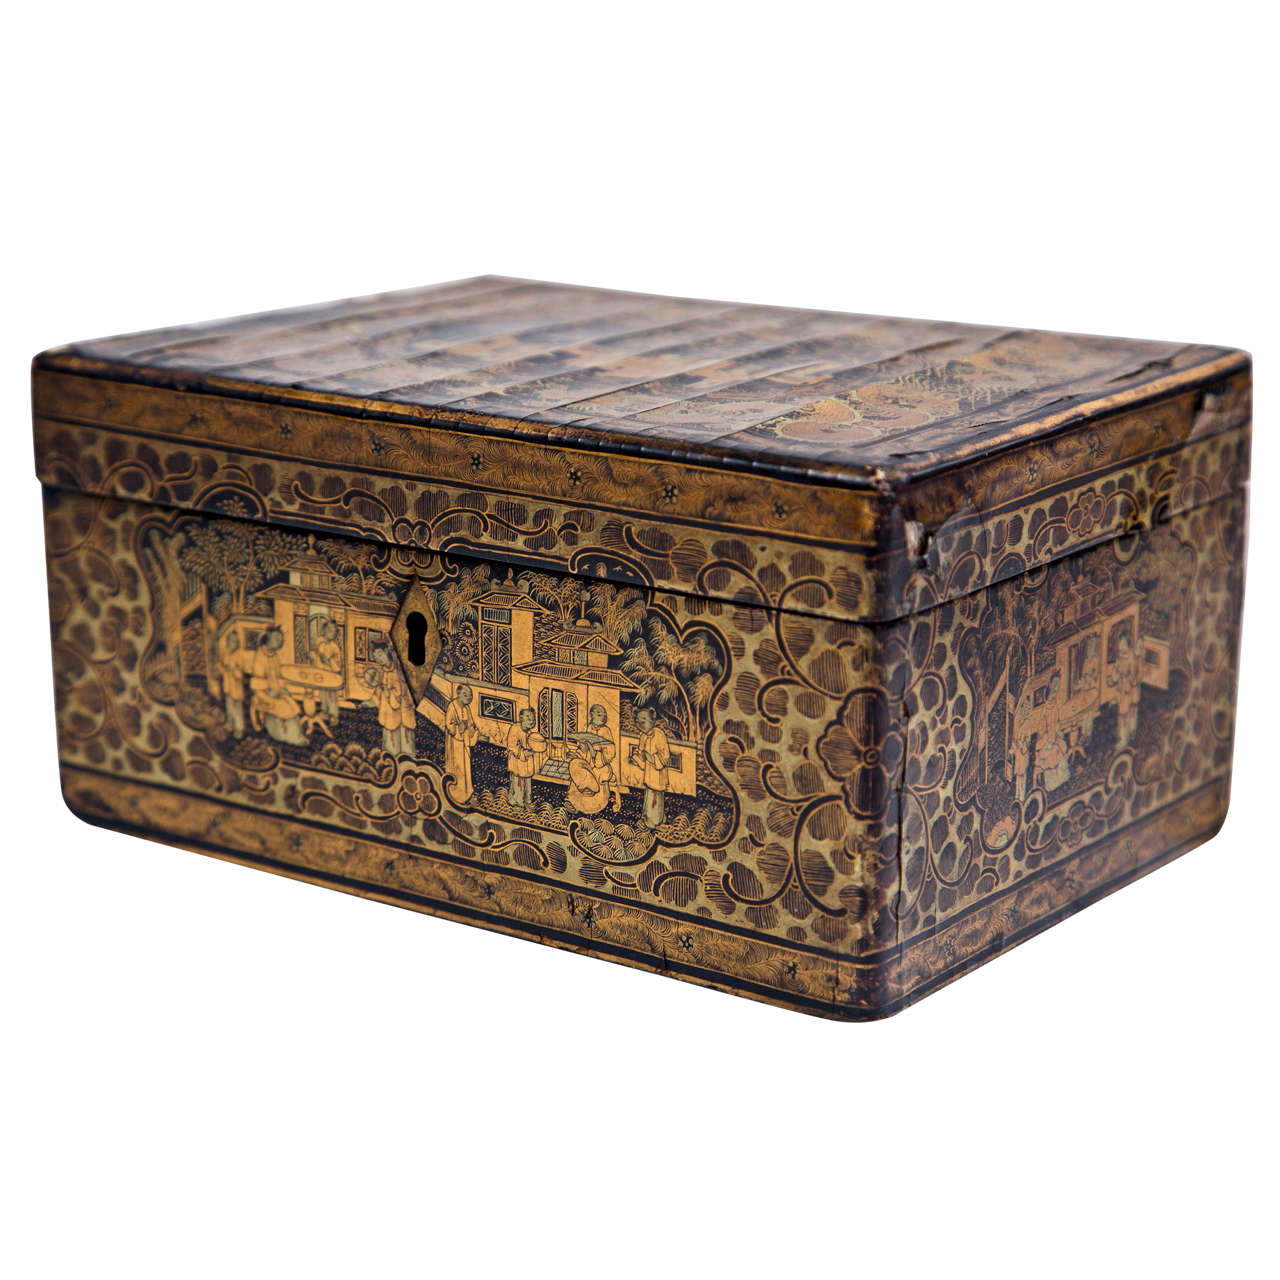 19th Century Chinoiserie Antique Humidor Jewelry Box For Sale at 1stdibs